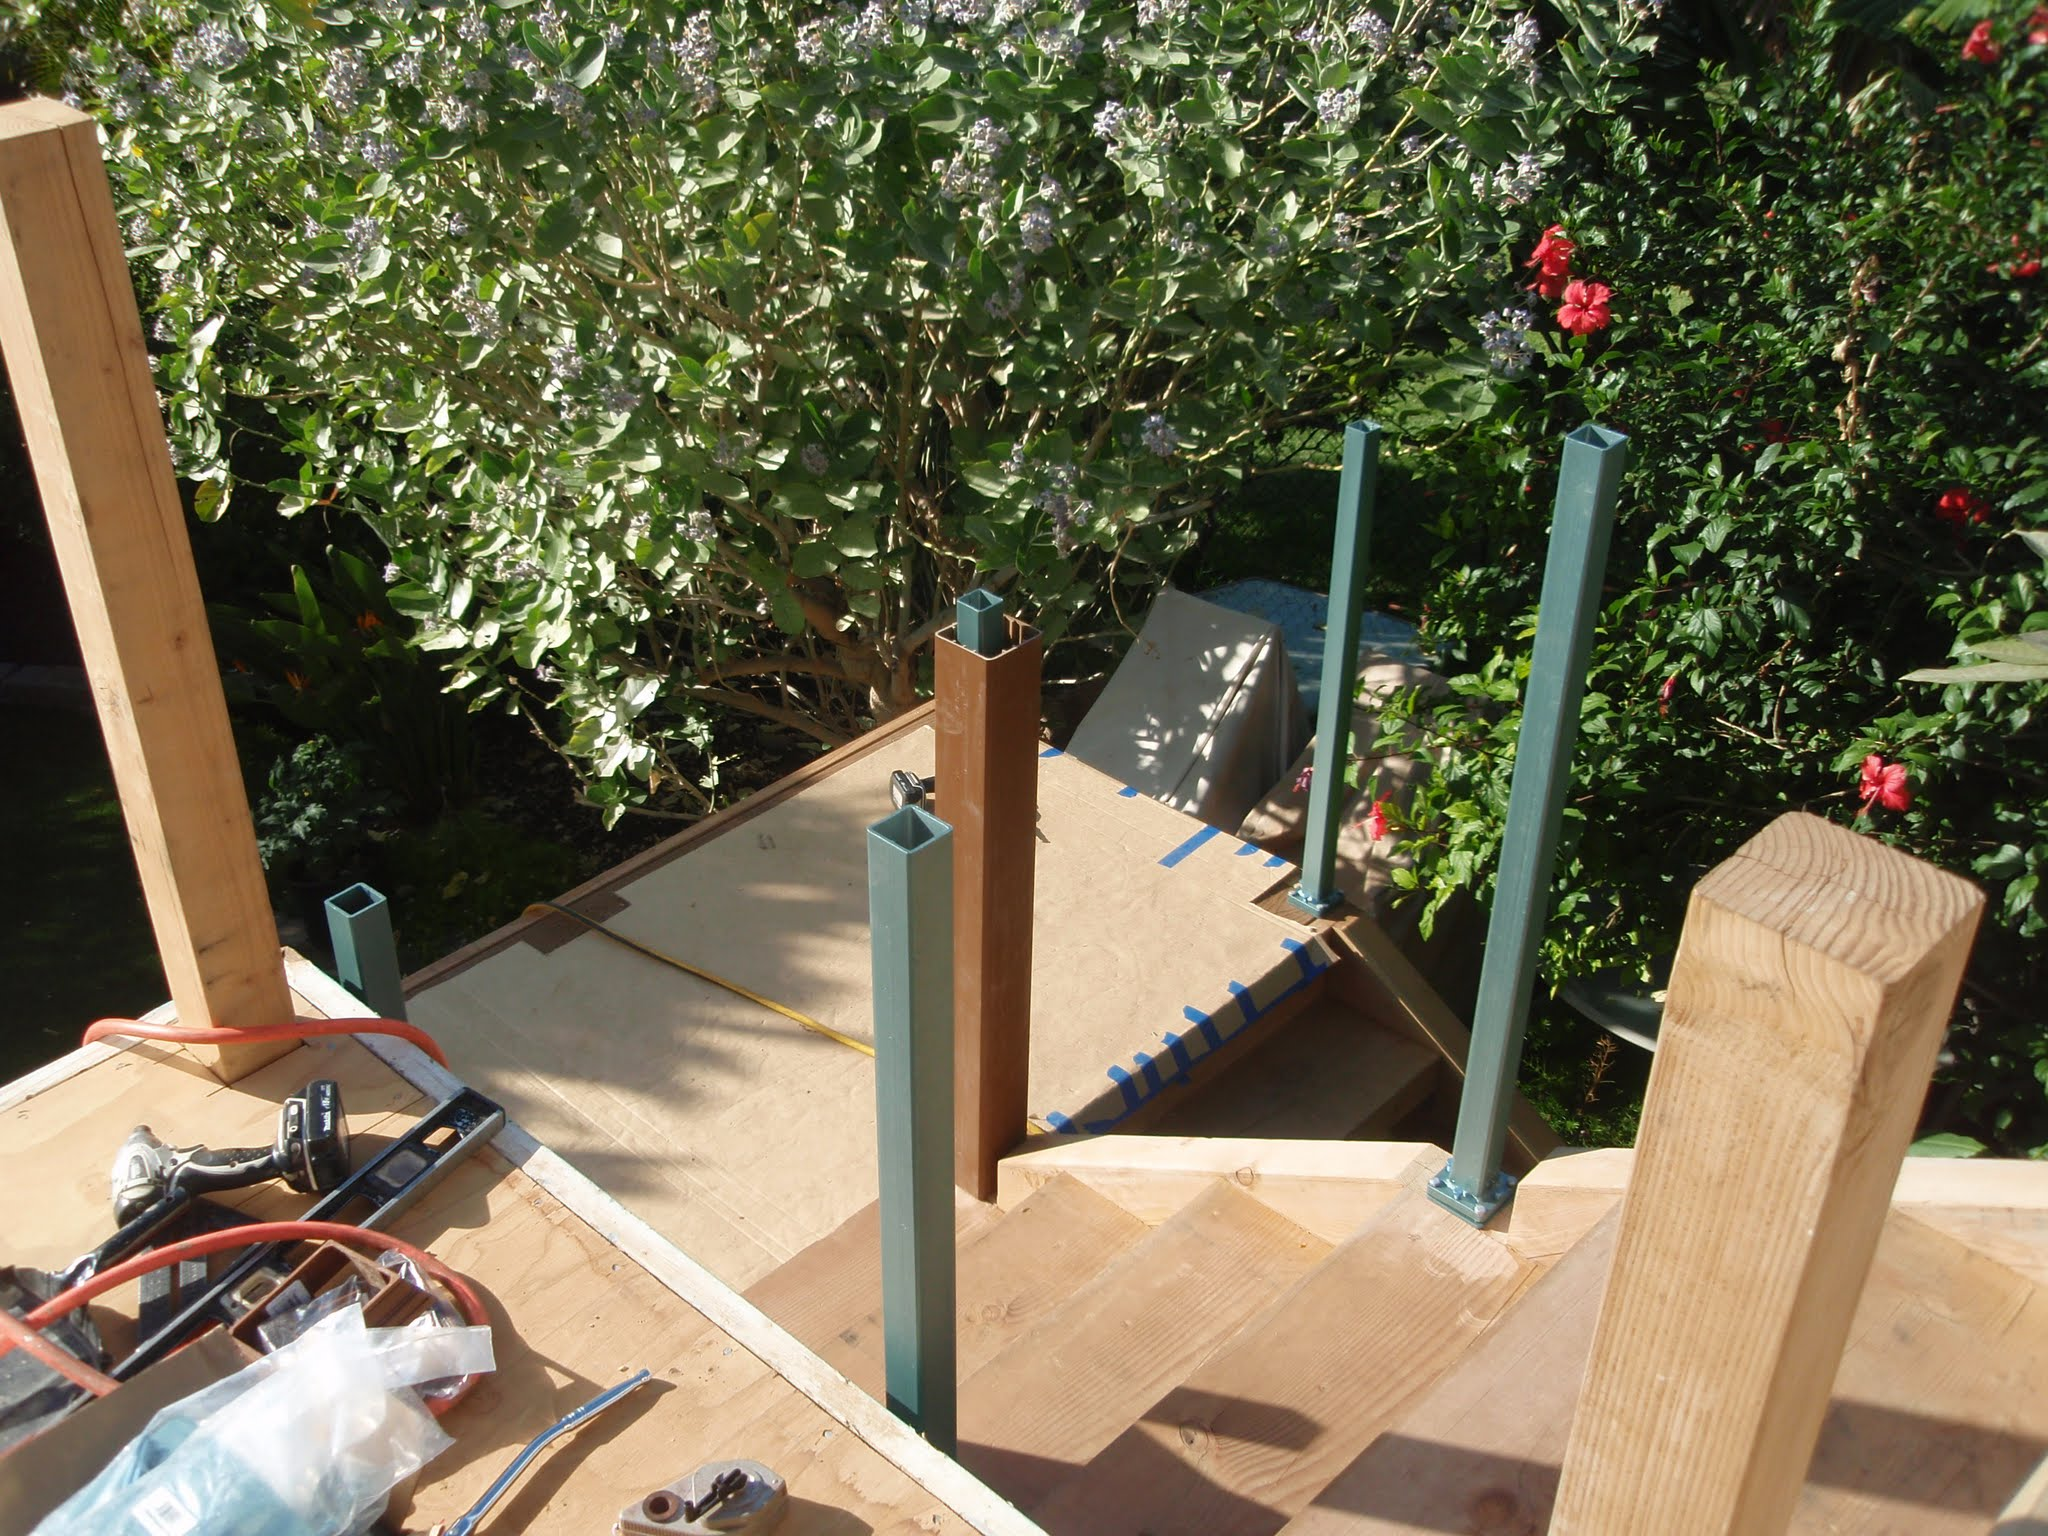 Stair way is utilizing Trex post sleeve railing with metal inner posts securely bolted & balanced in